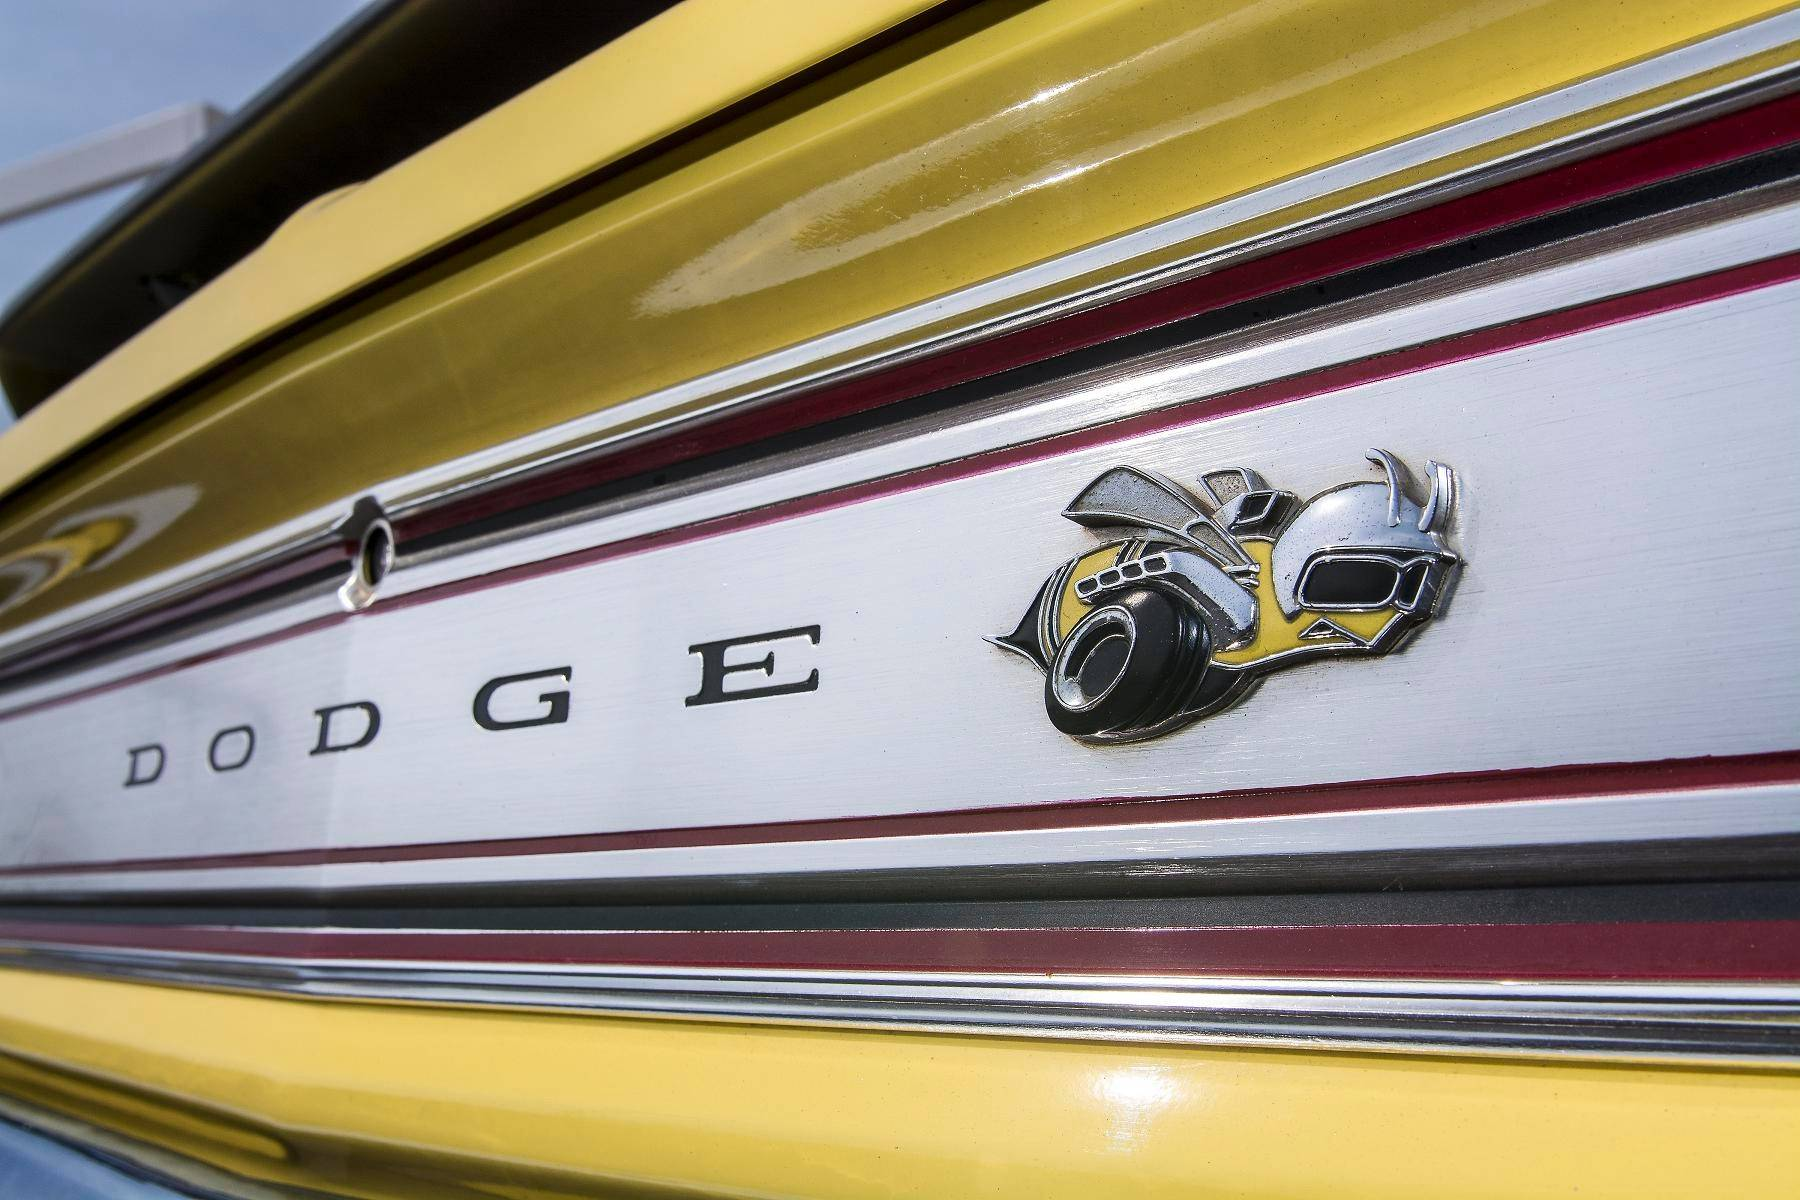 Many people who attend car shows are unaware Dodge once made the Super Bee, Szarzynski says.